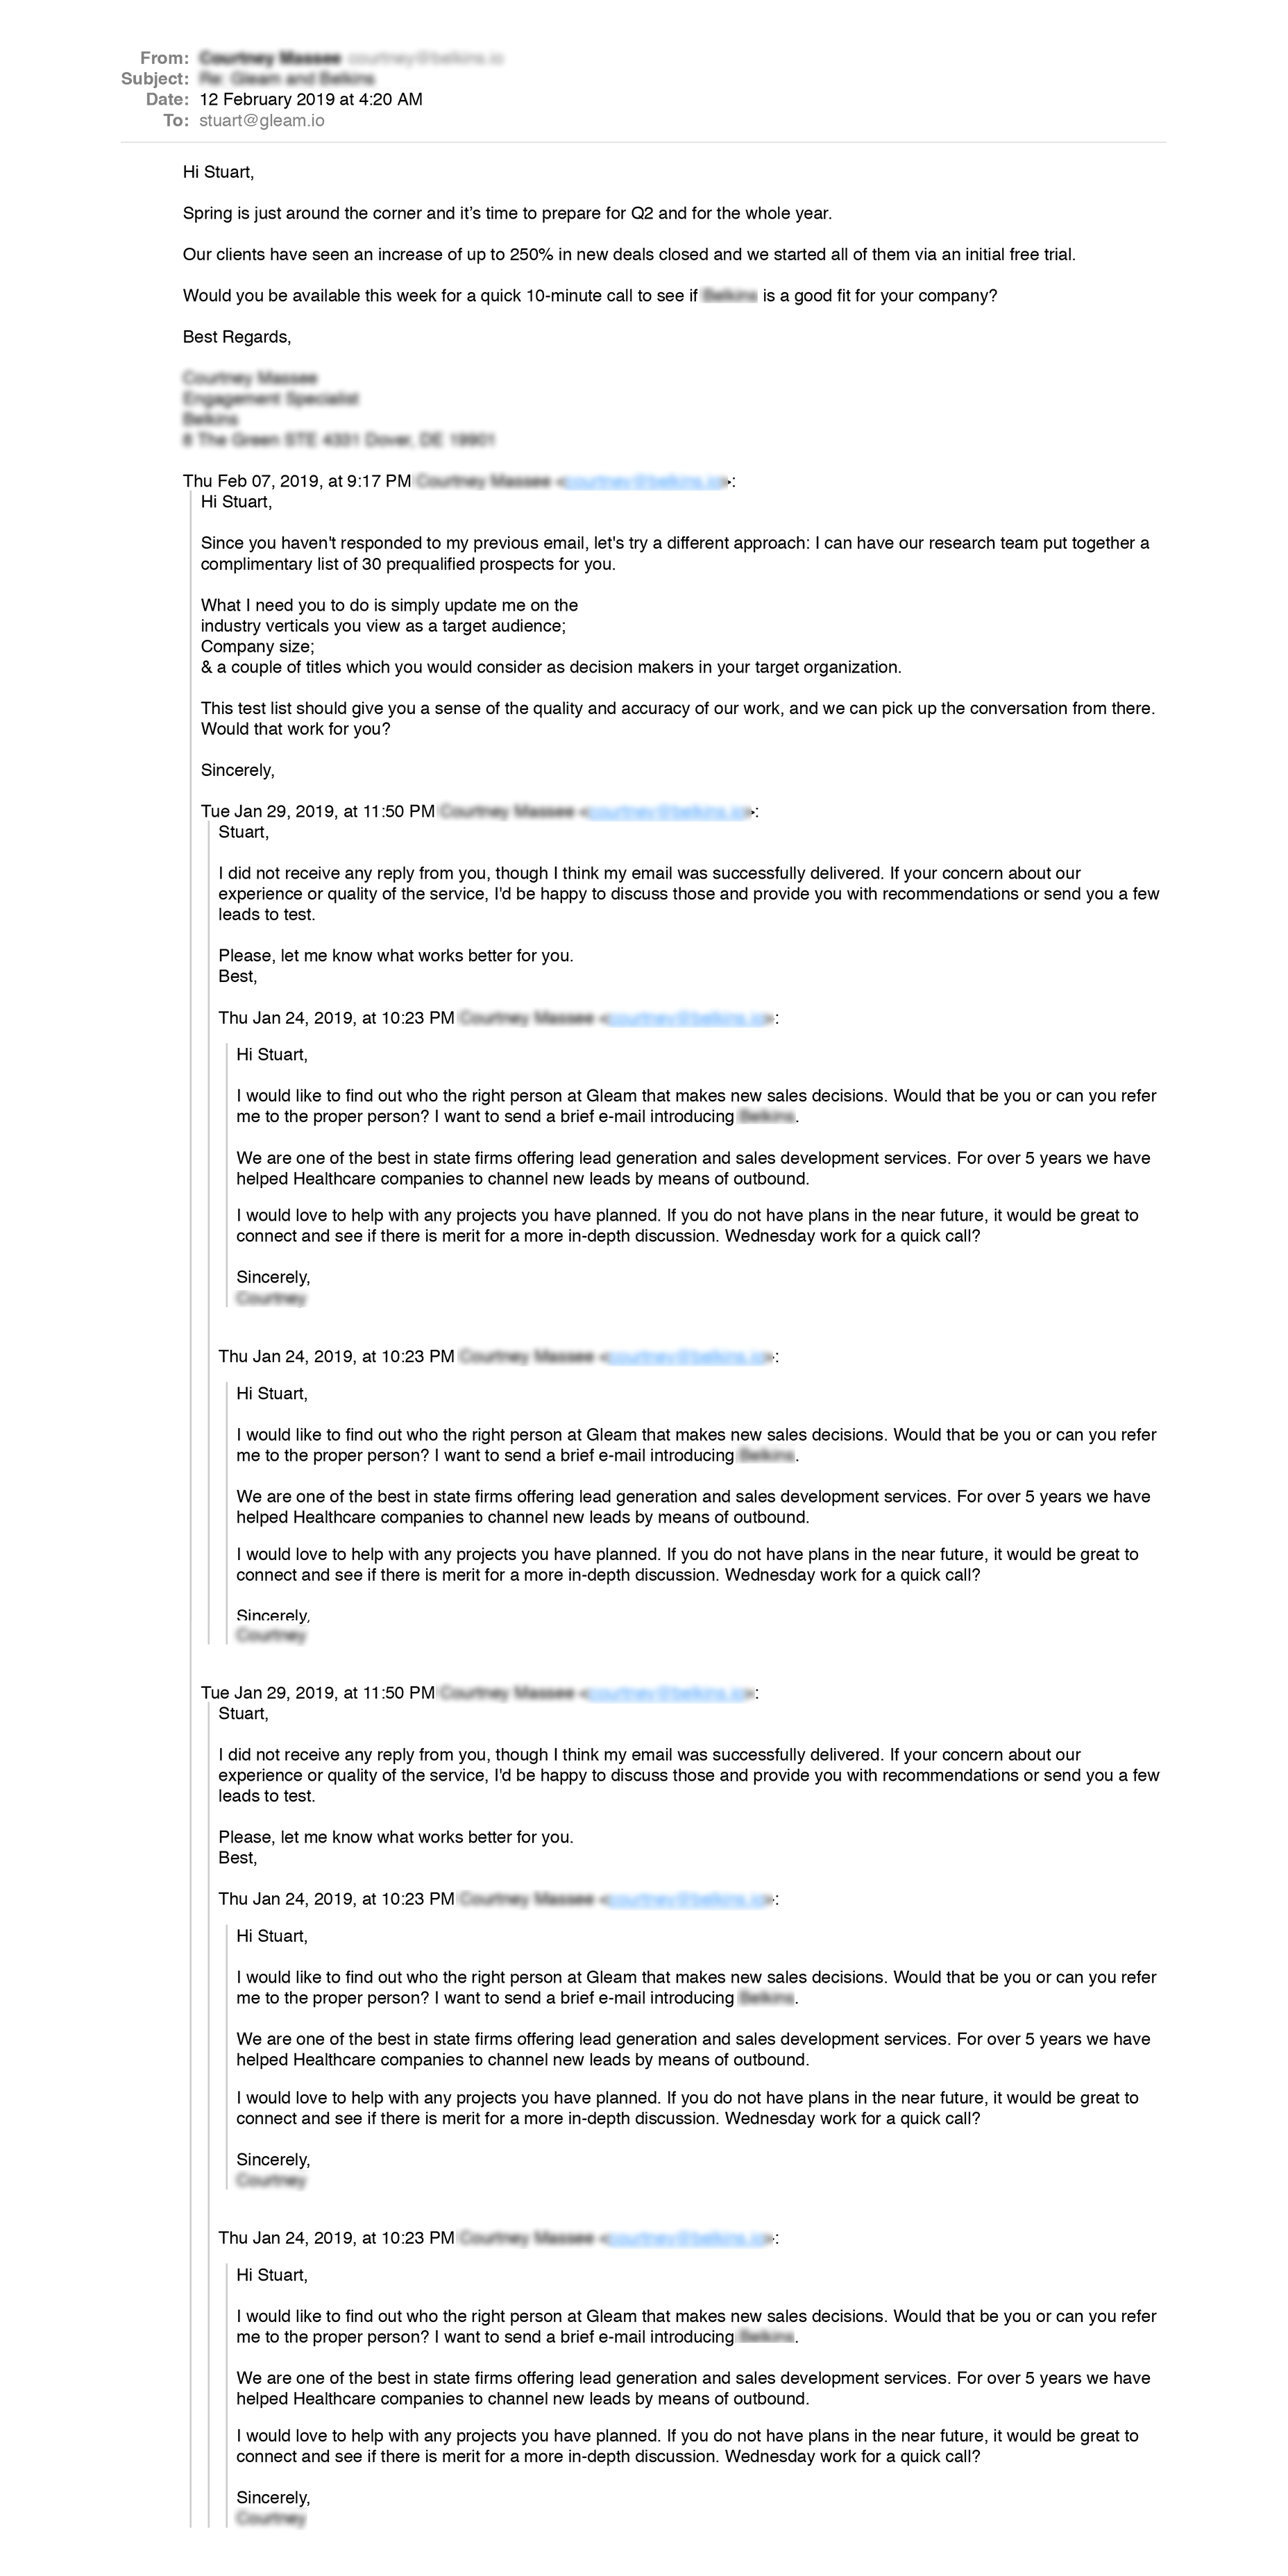 Don't spam with your follow ups